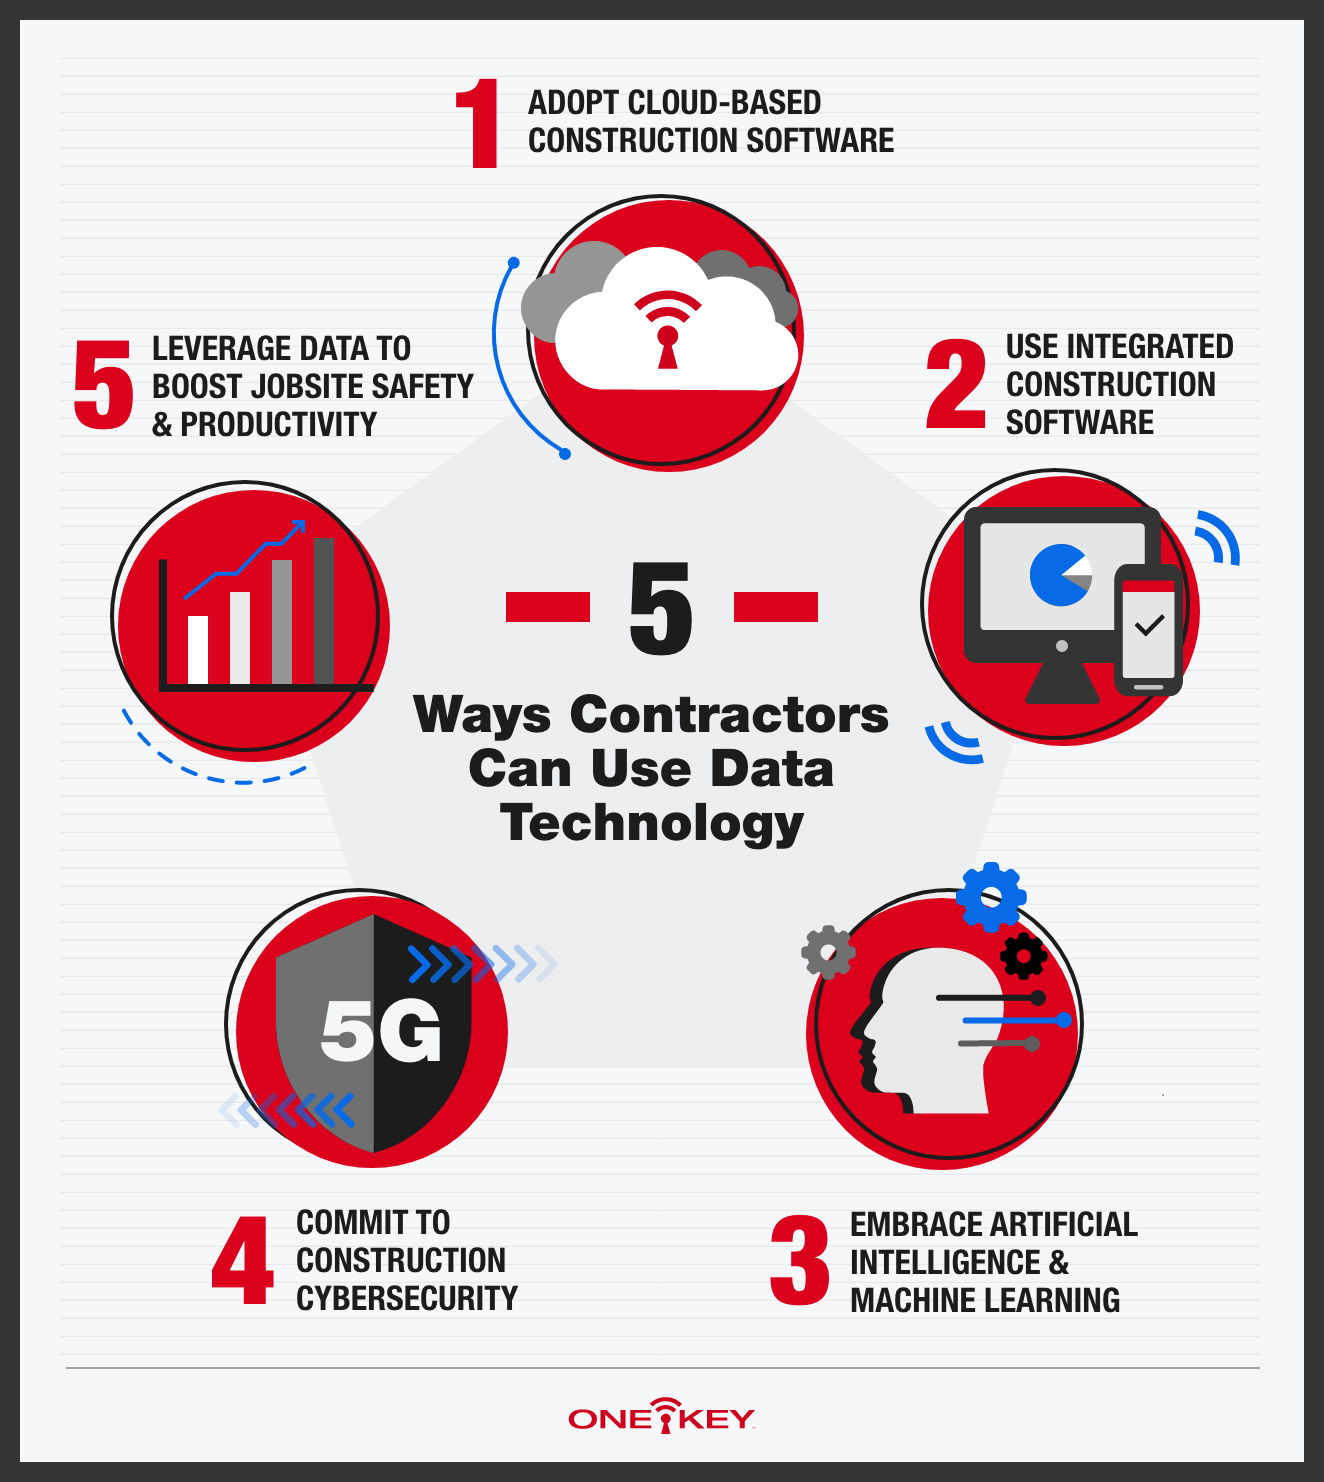 An infographic detailing 5 ways to implement data on construction sites